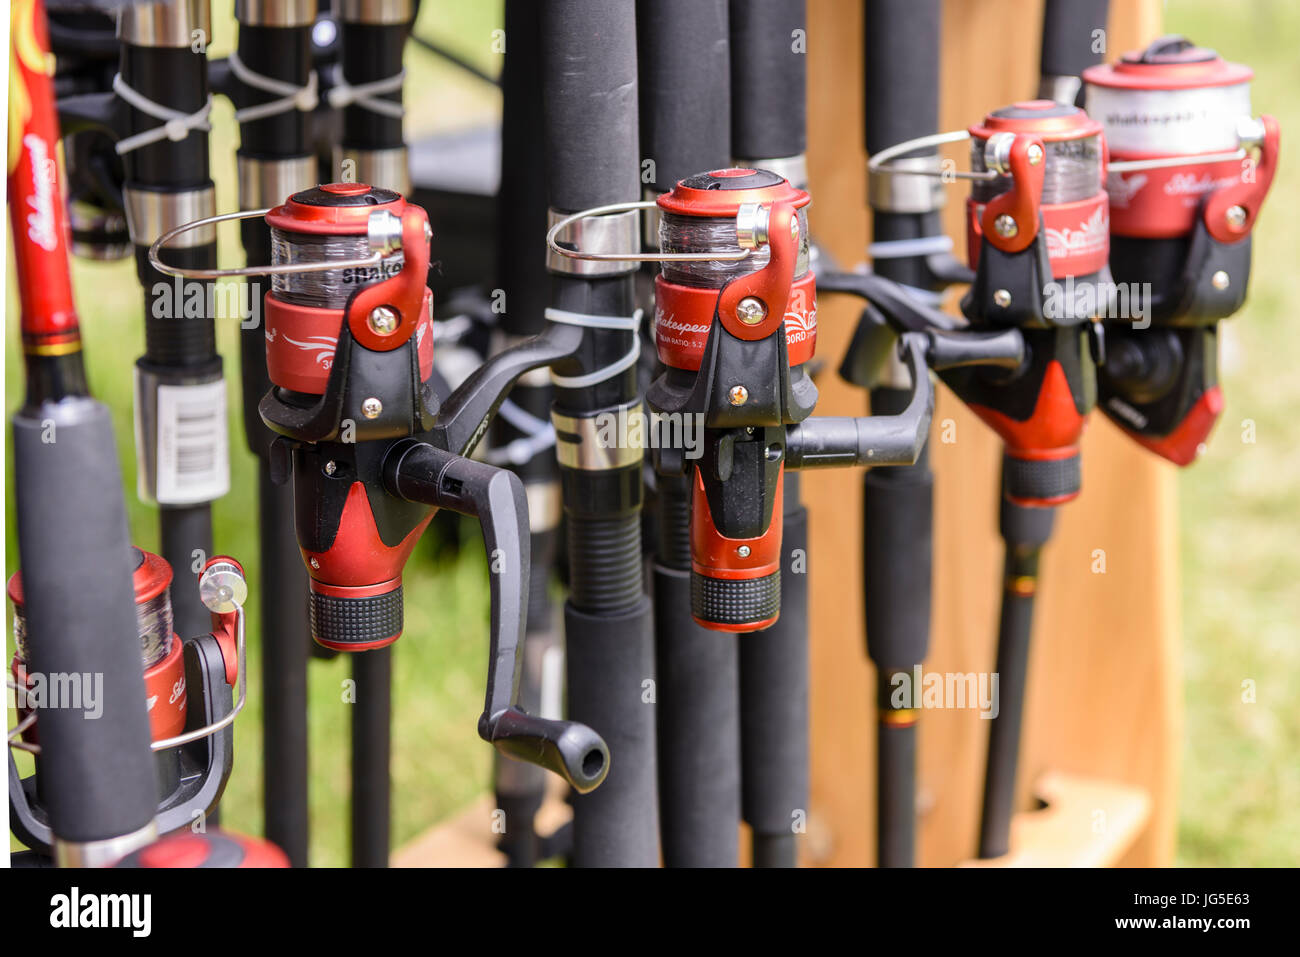 Fishing spinning rods and reels for sale at a market stall Stock ...